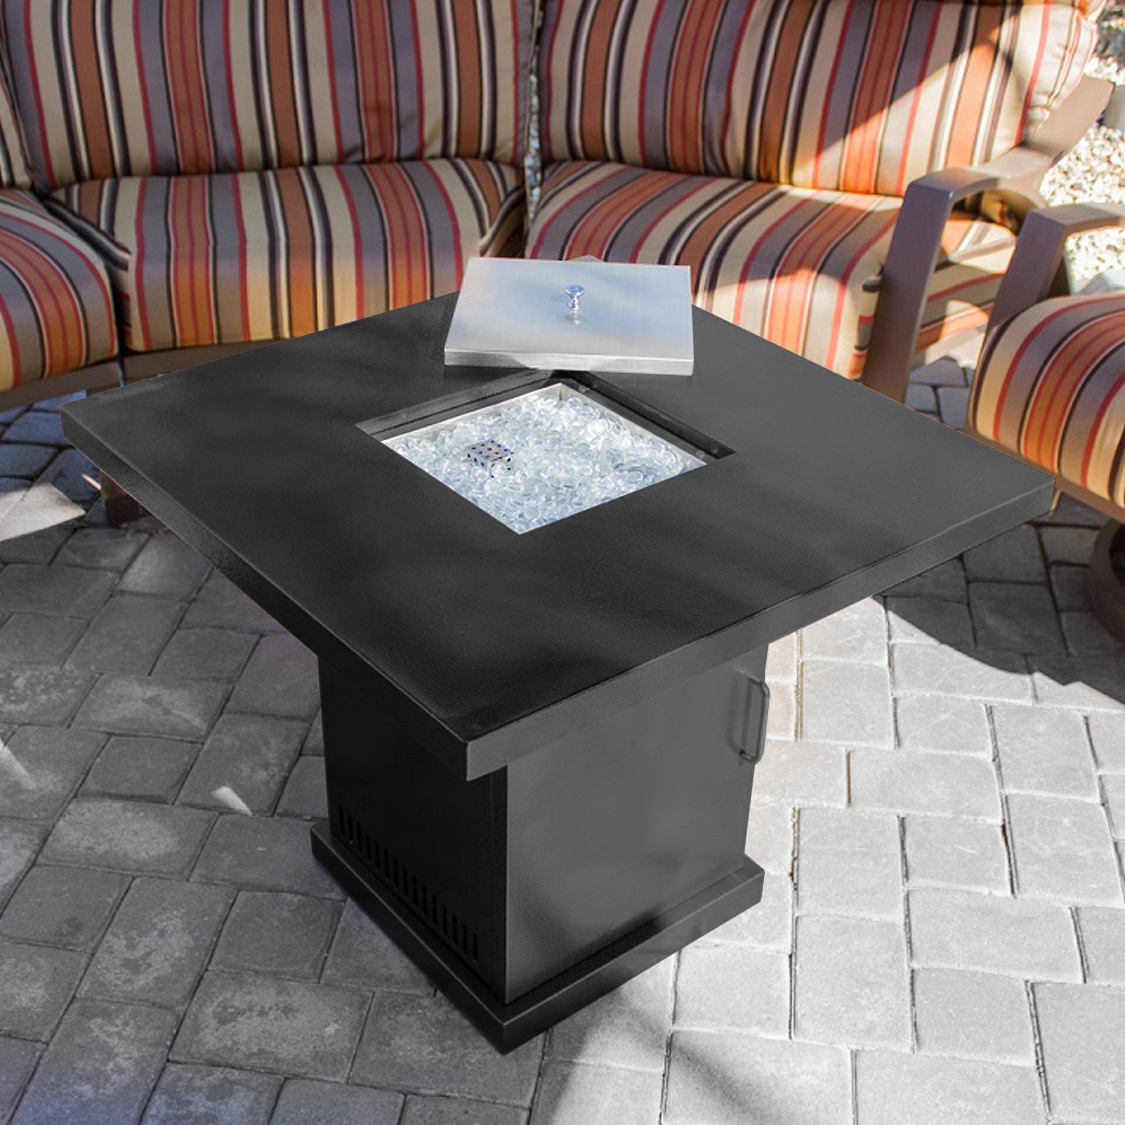 Fireplace Tables Outdoor Patio Heater Table Fire Pit Outdoor Backyard Propane